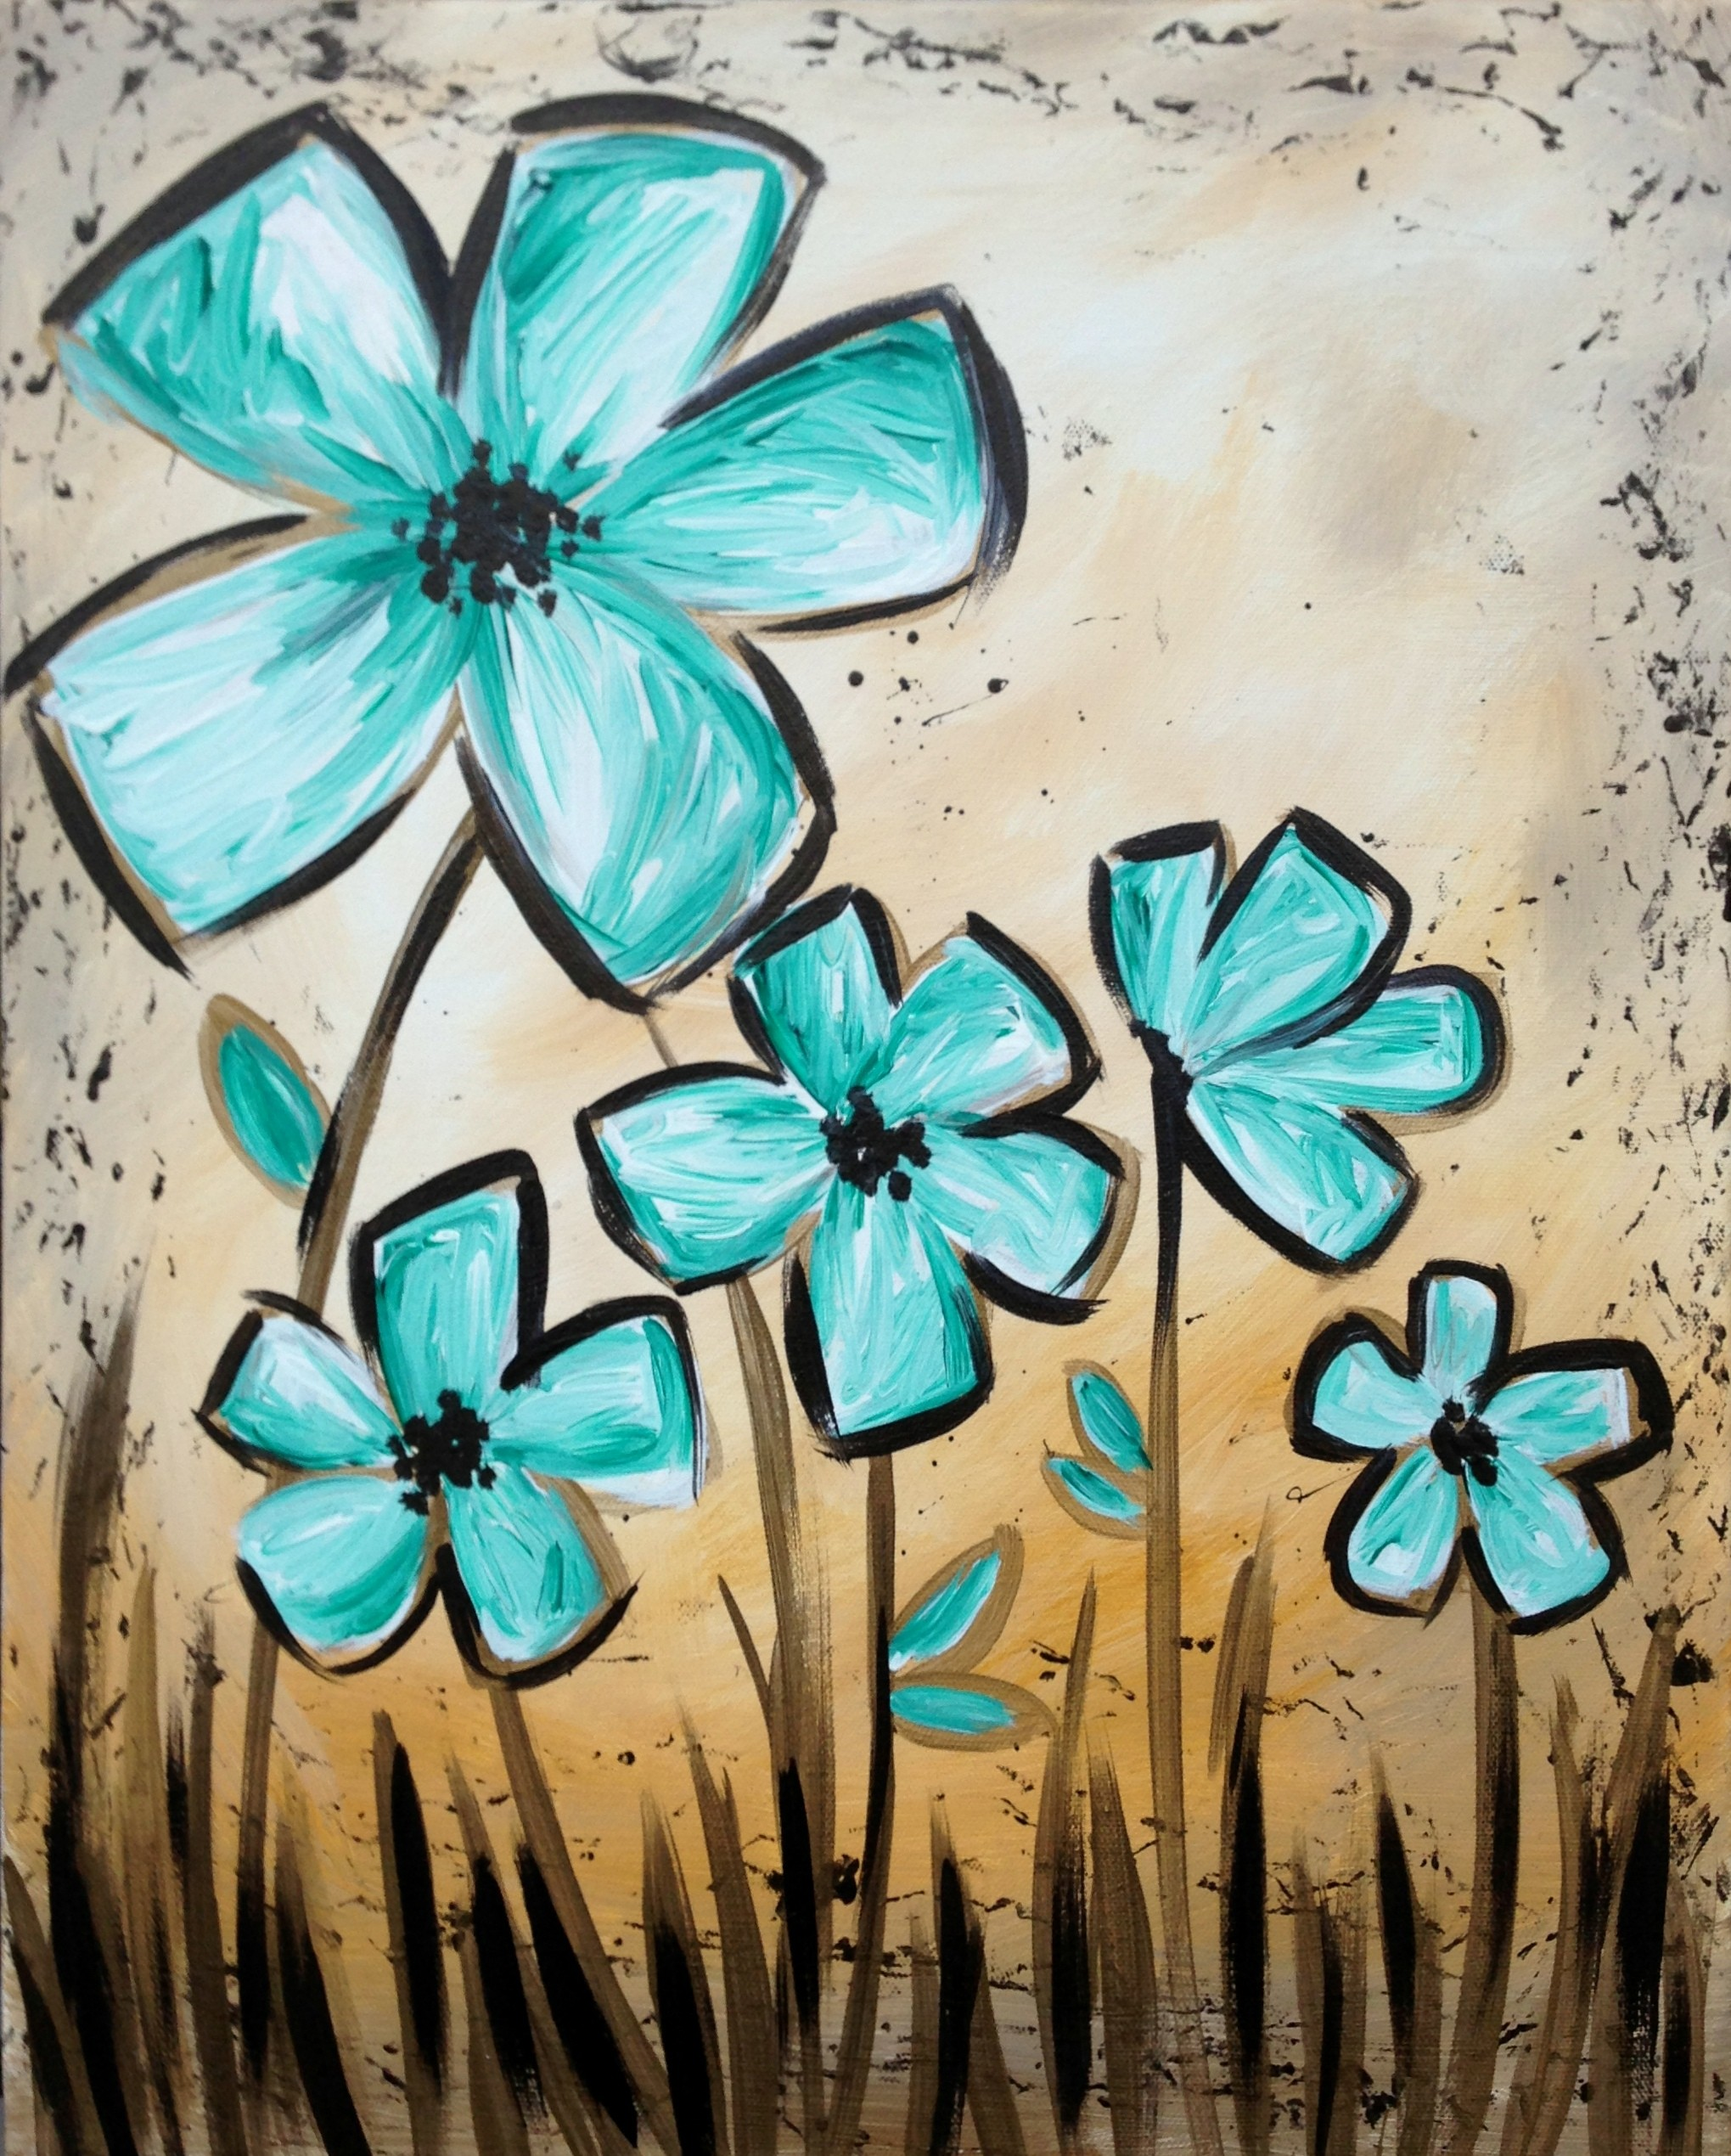 Rustic Garden from Pinot s Palette • Acrylic Canvas Painting